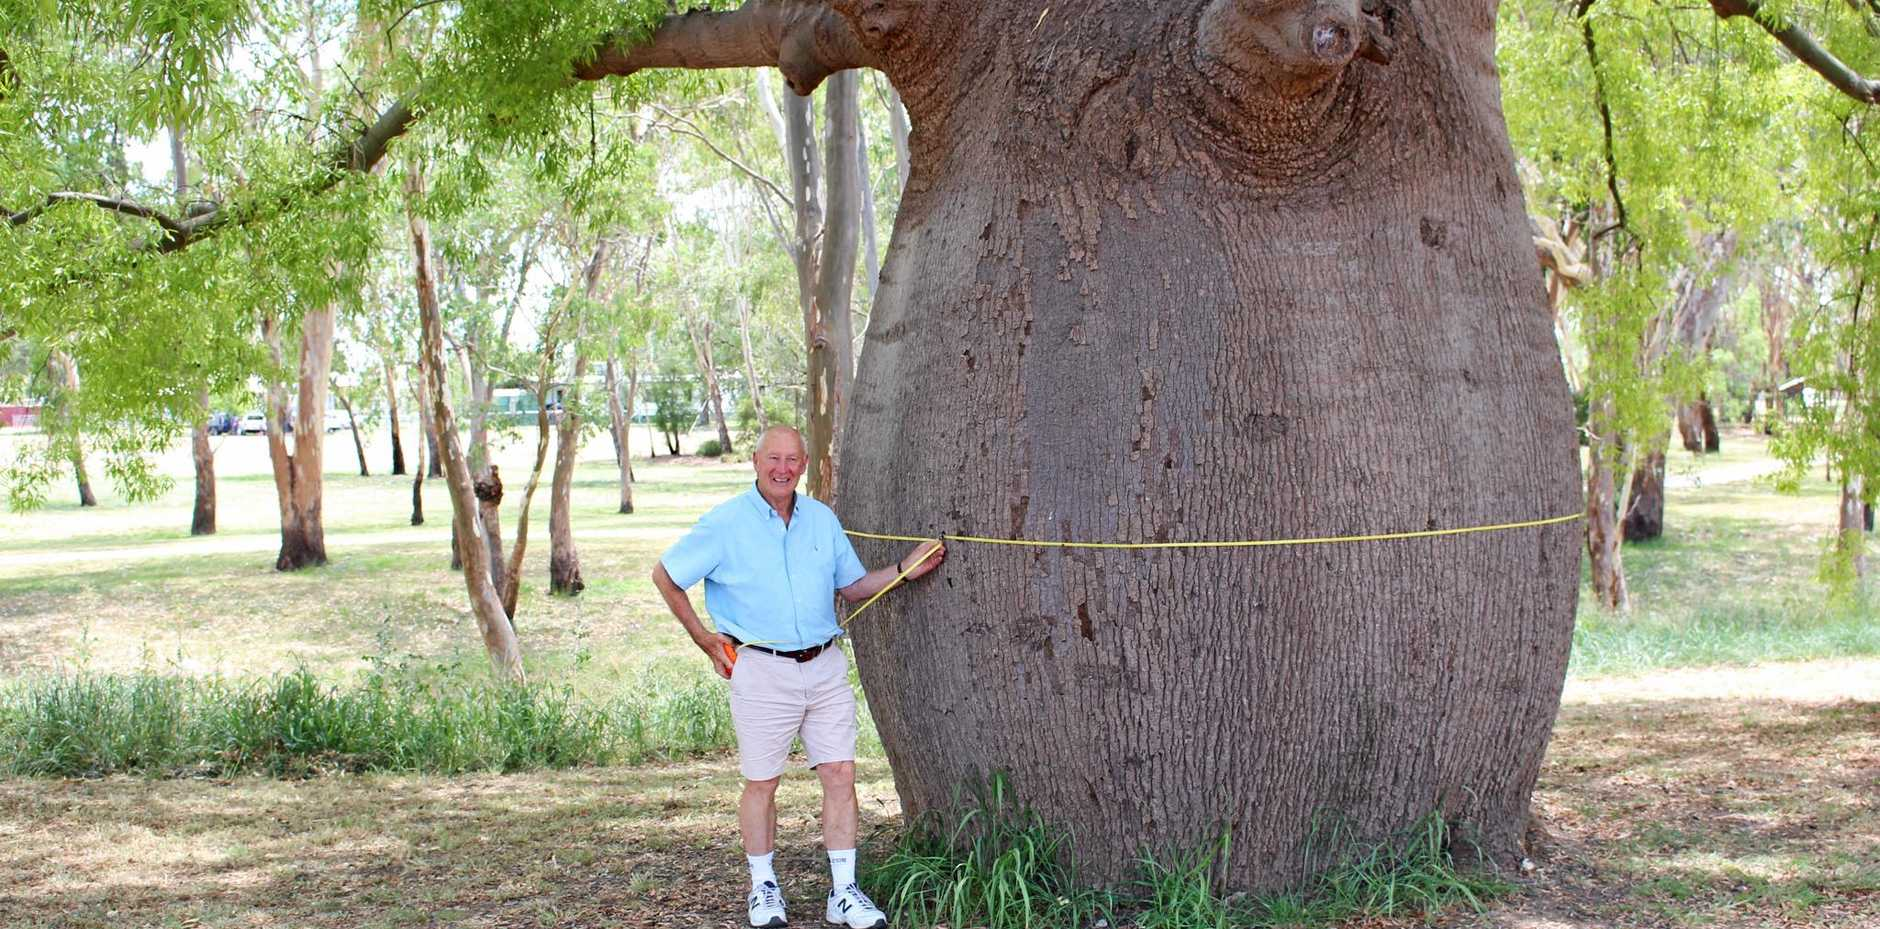 MEASURING UP: Derek McIntosh, who is with the National Register of Big Trees, admires Roma's biggest bottle tree.